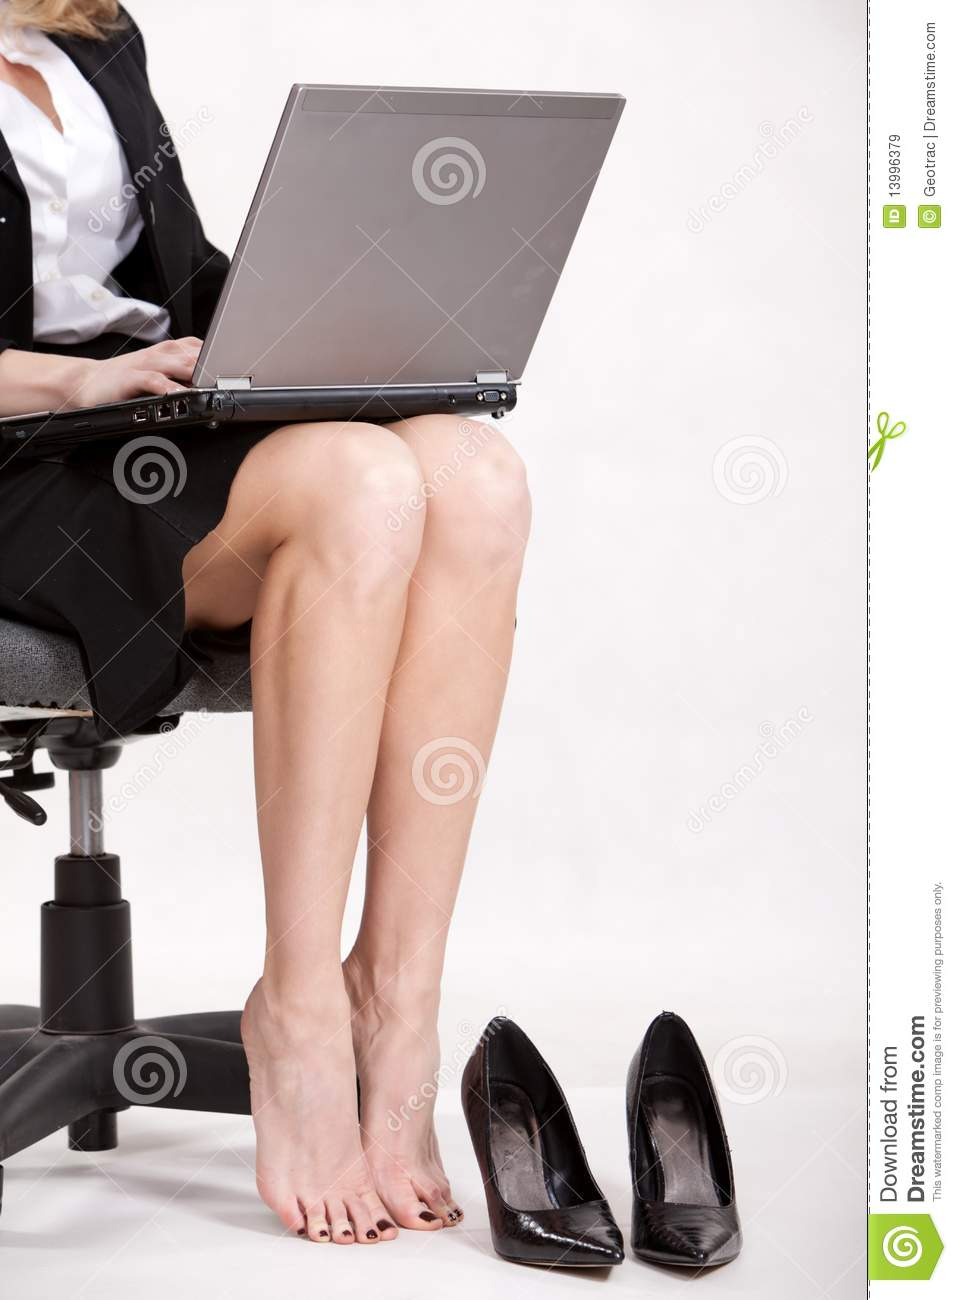 Businesswoman Legs With Laptop Stock Image  Image of